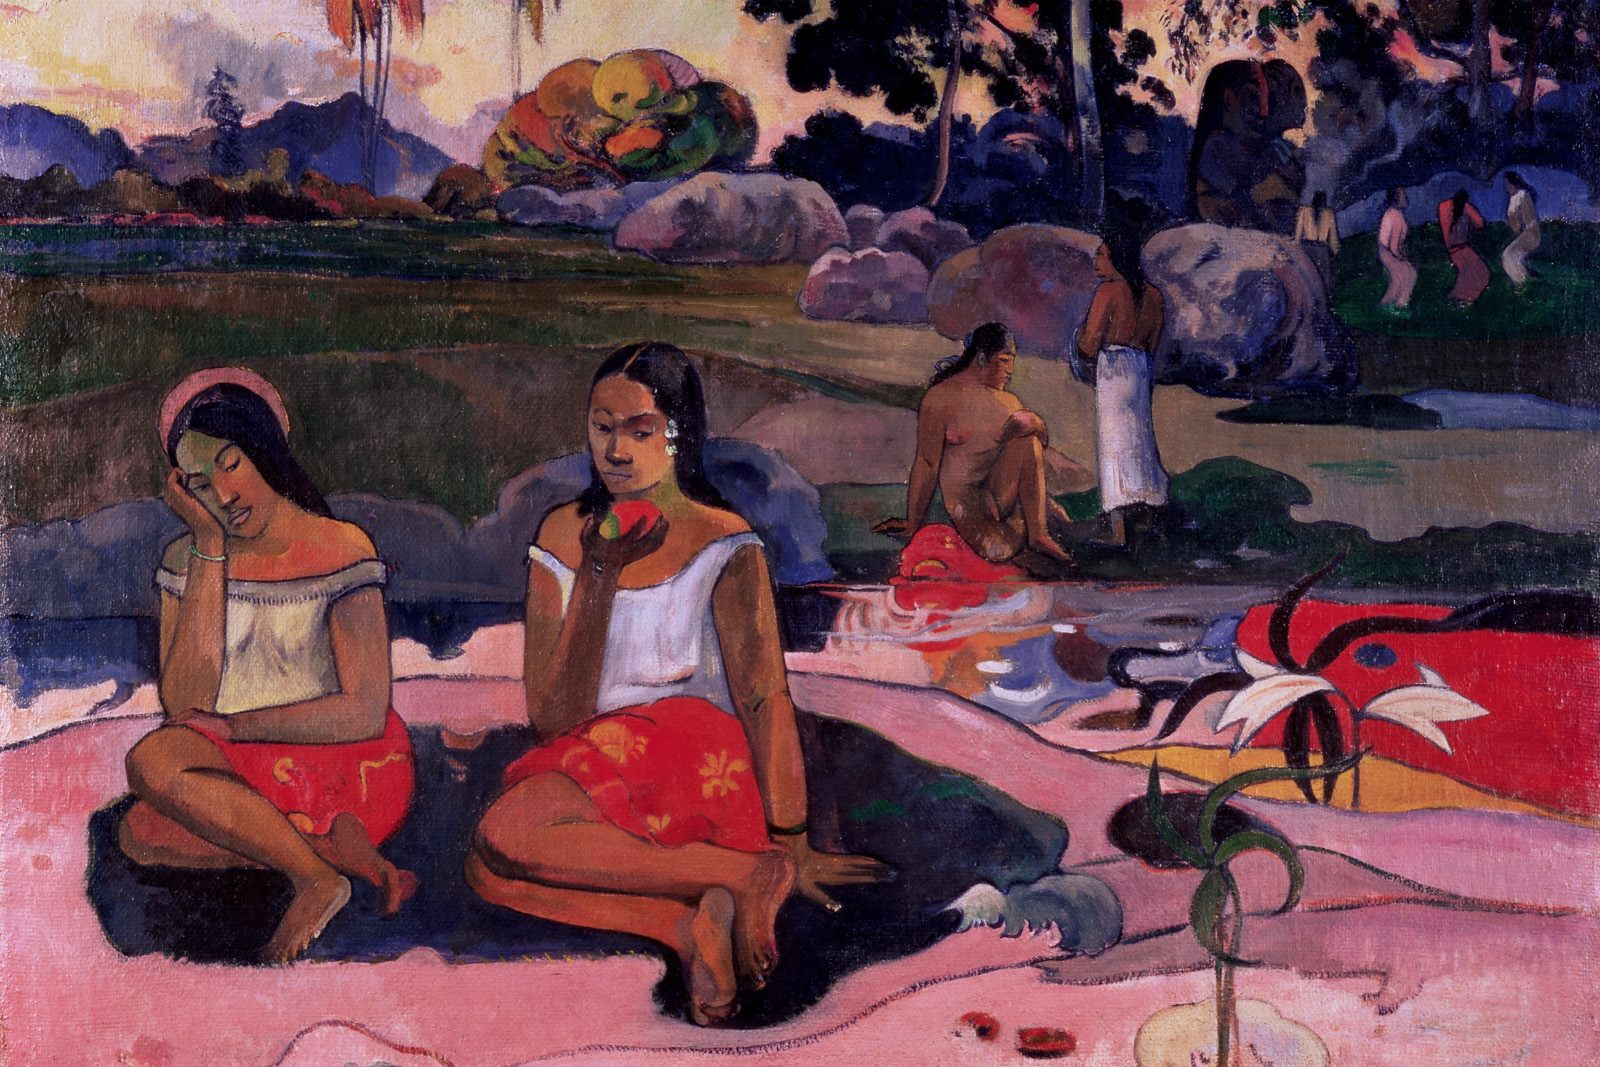 https://animeonly.org/albums/FEDOROS_RULES/1600x1200/Fine-Art/Fine-Art---Post-Impressionism/Spring_of_Miracles%2C_Gauguin%2C_1894.jpg